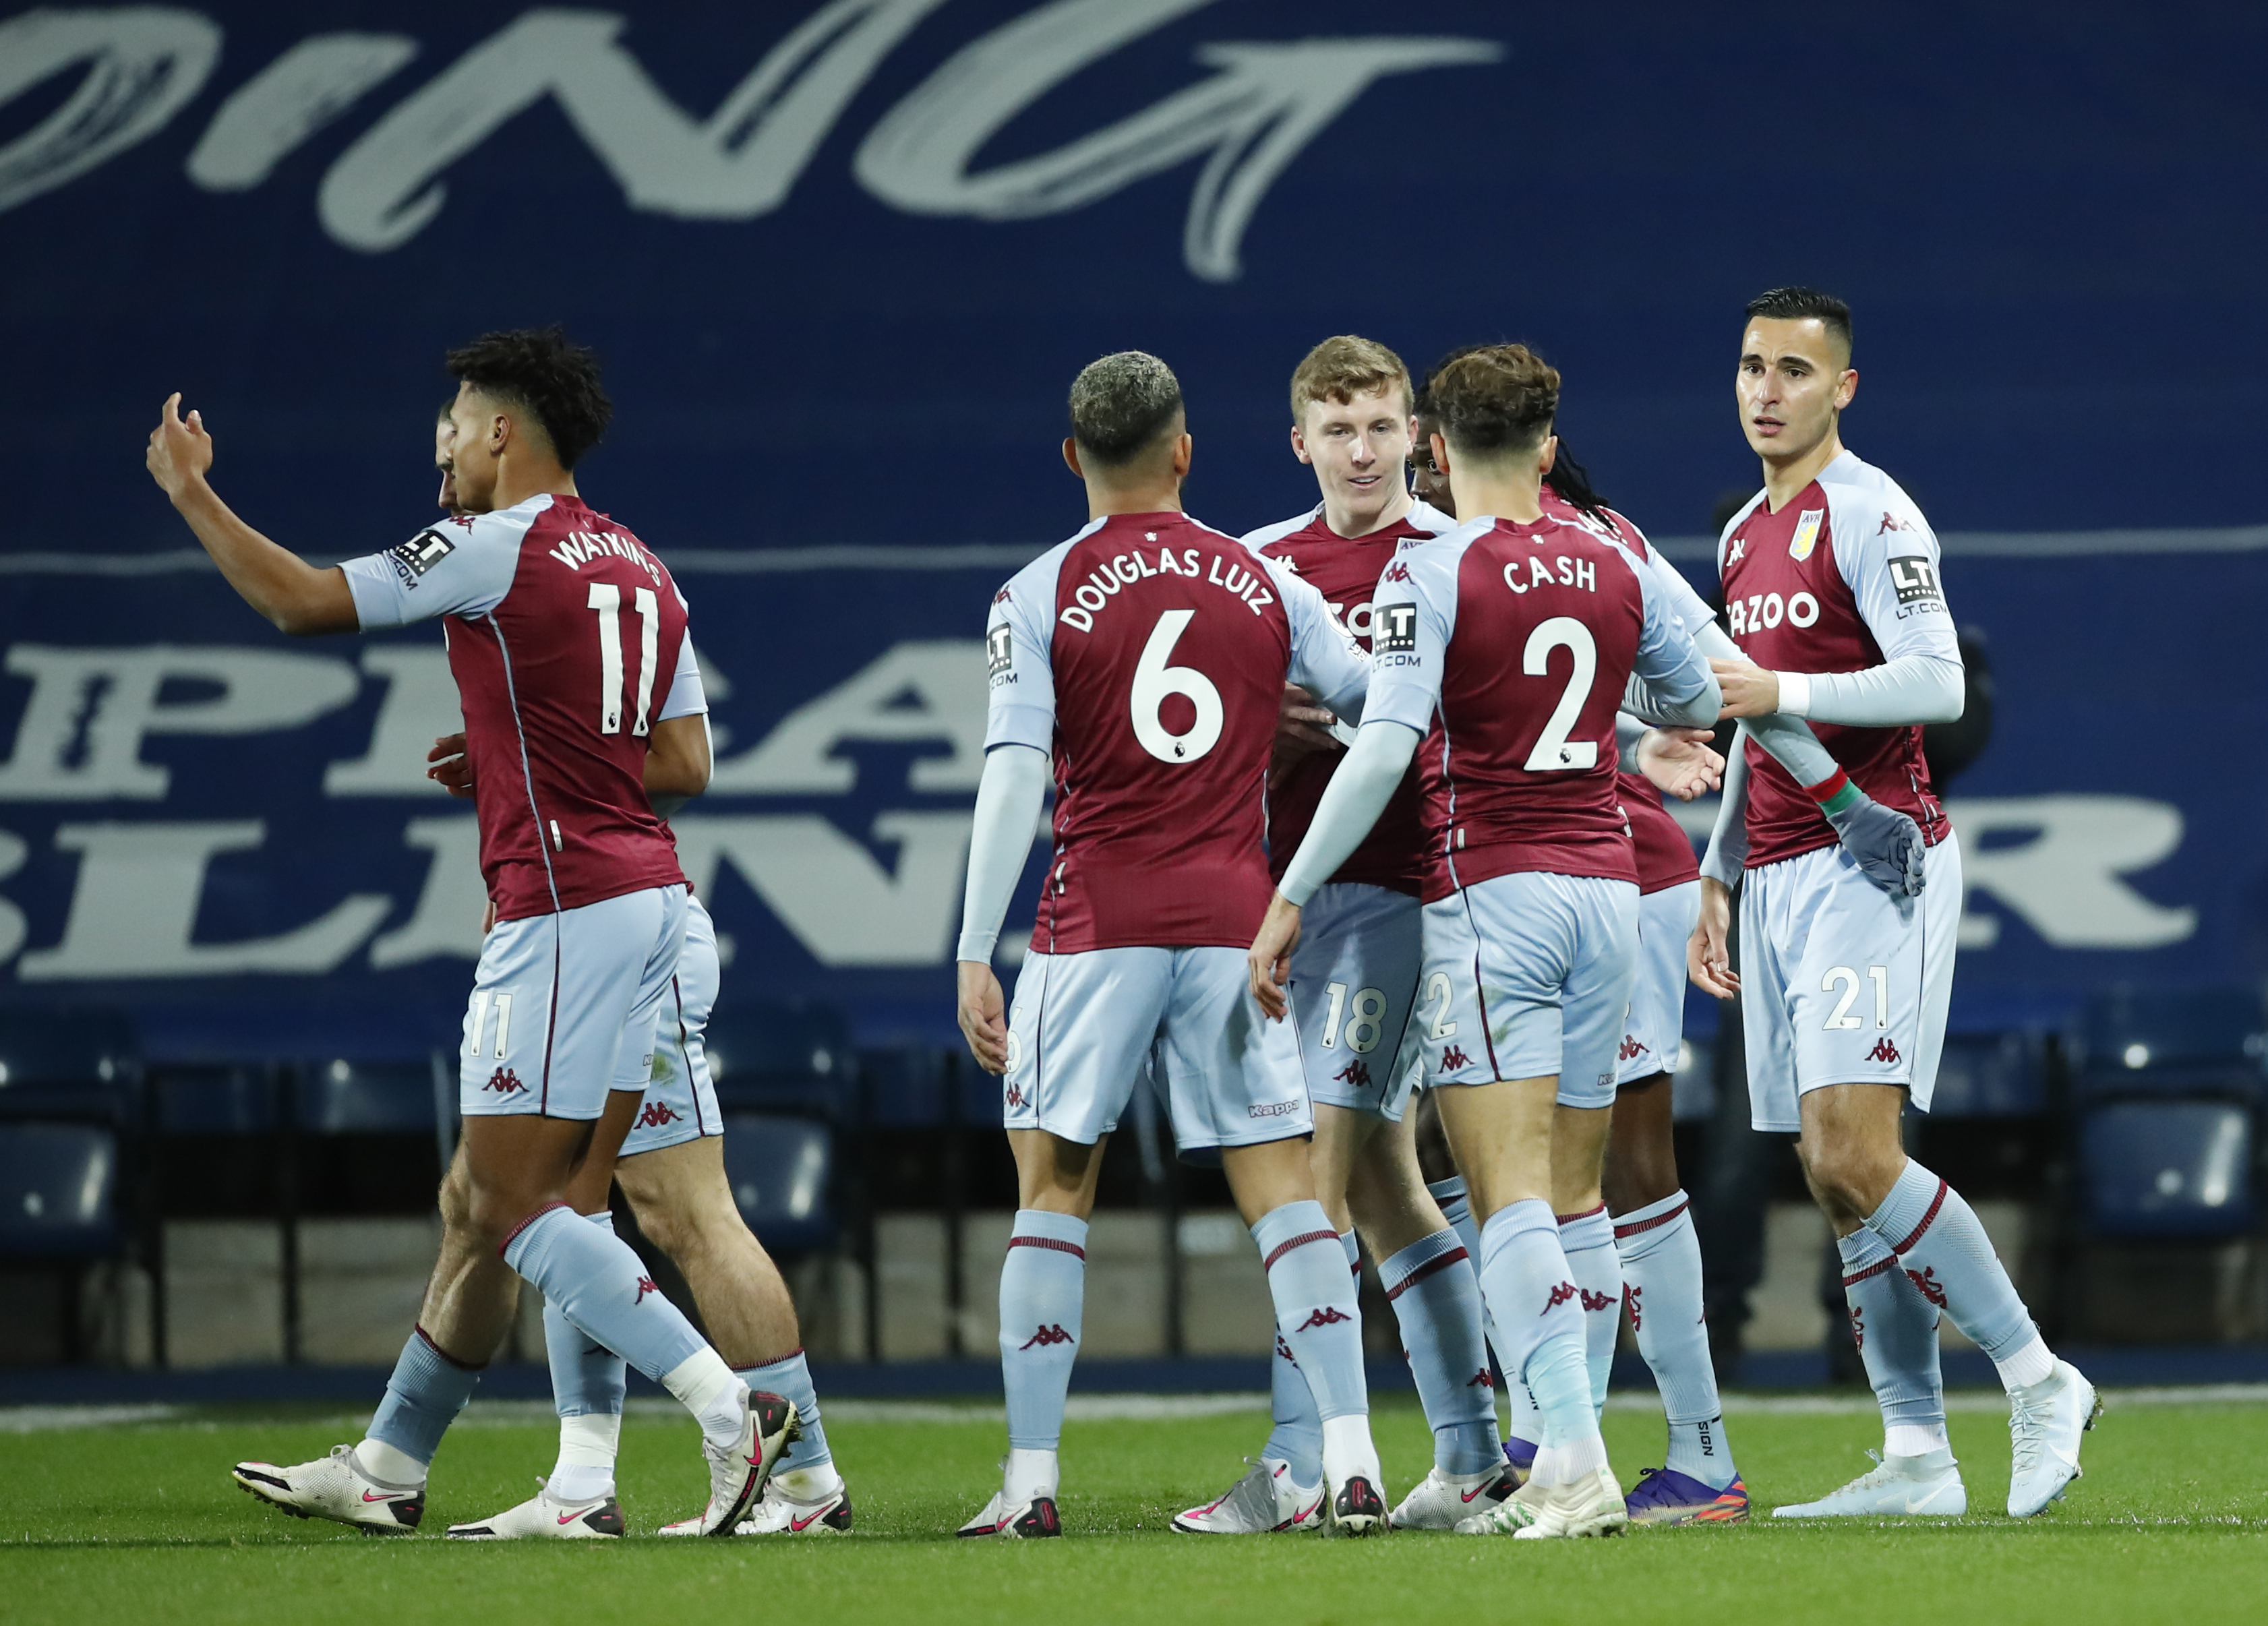 4-3-3 Aston Villa Predicted Lineup Vs Wolves (Aston Villa players are celebrating in the photo)